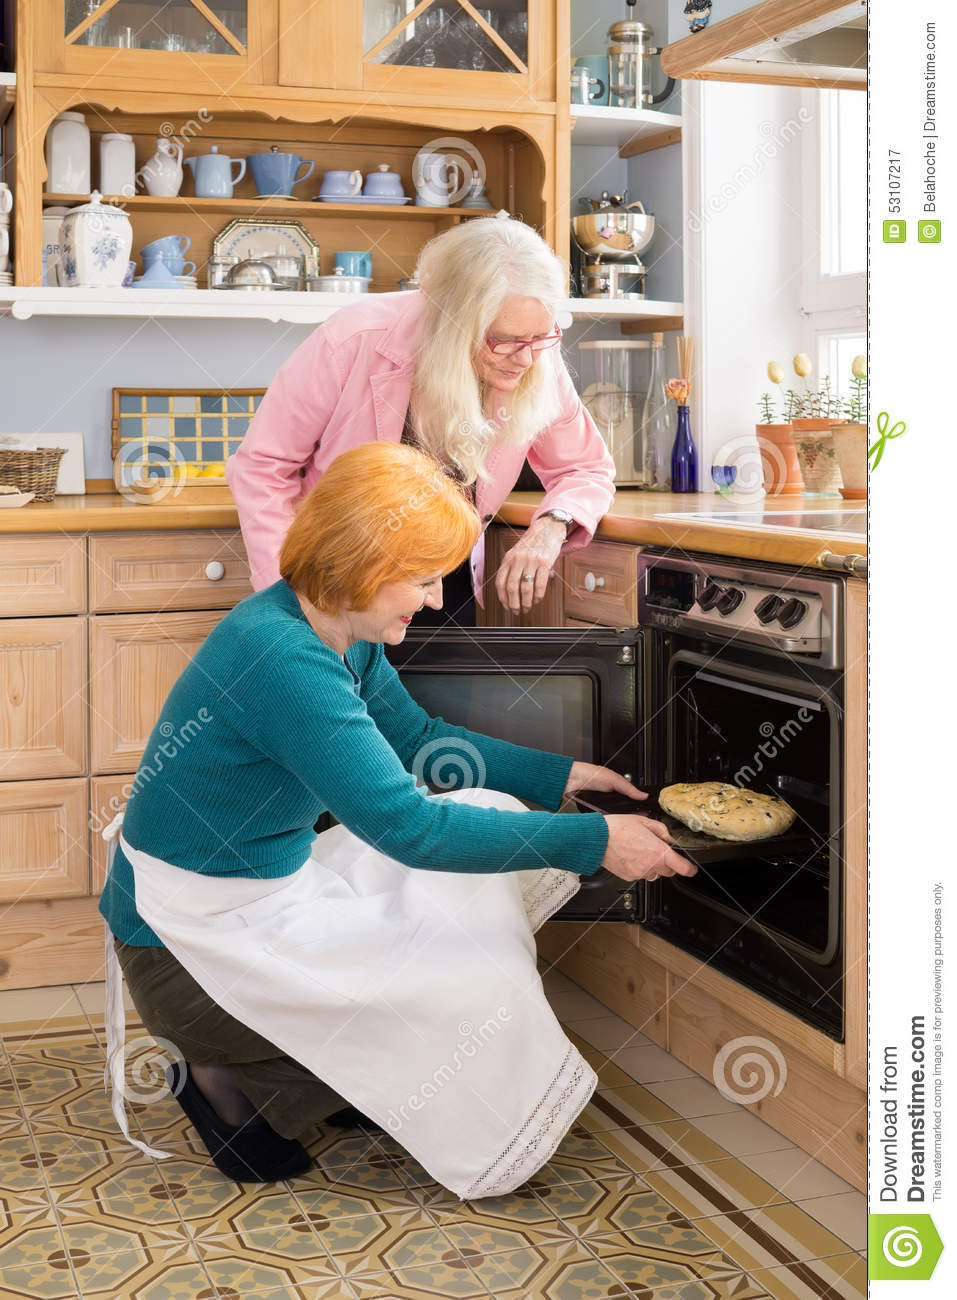 Watch Mom In Bedroom Camera: Mom Watching Other Mom Putting Cake In An Oven Stock Image